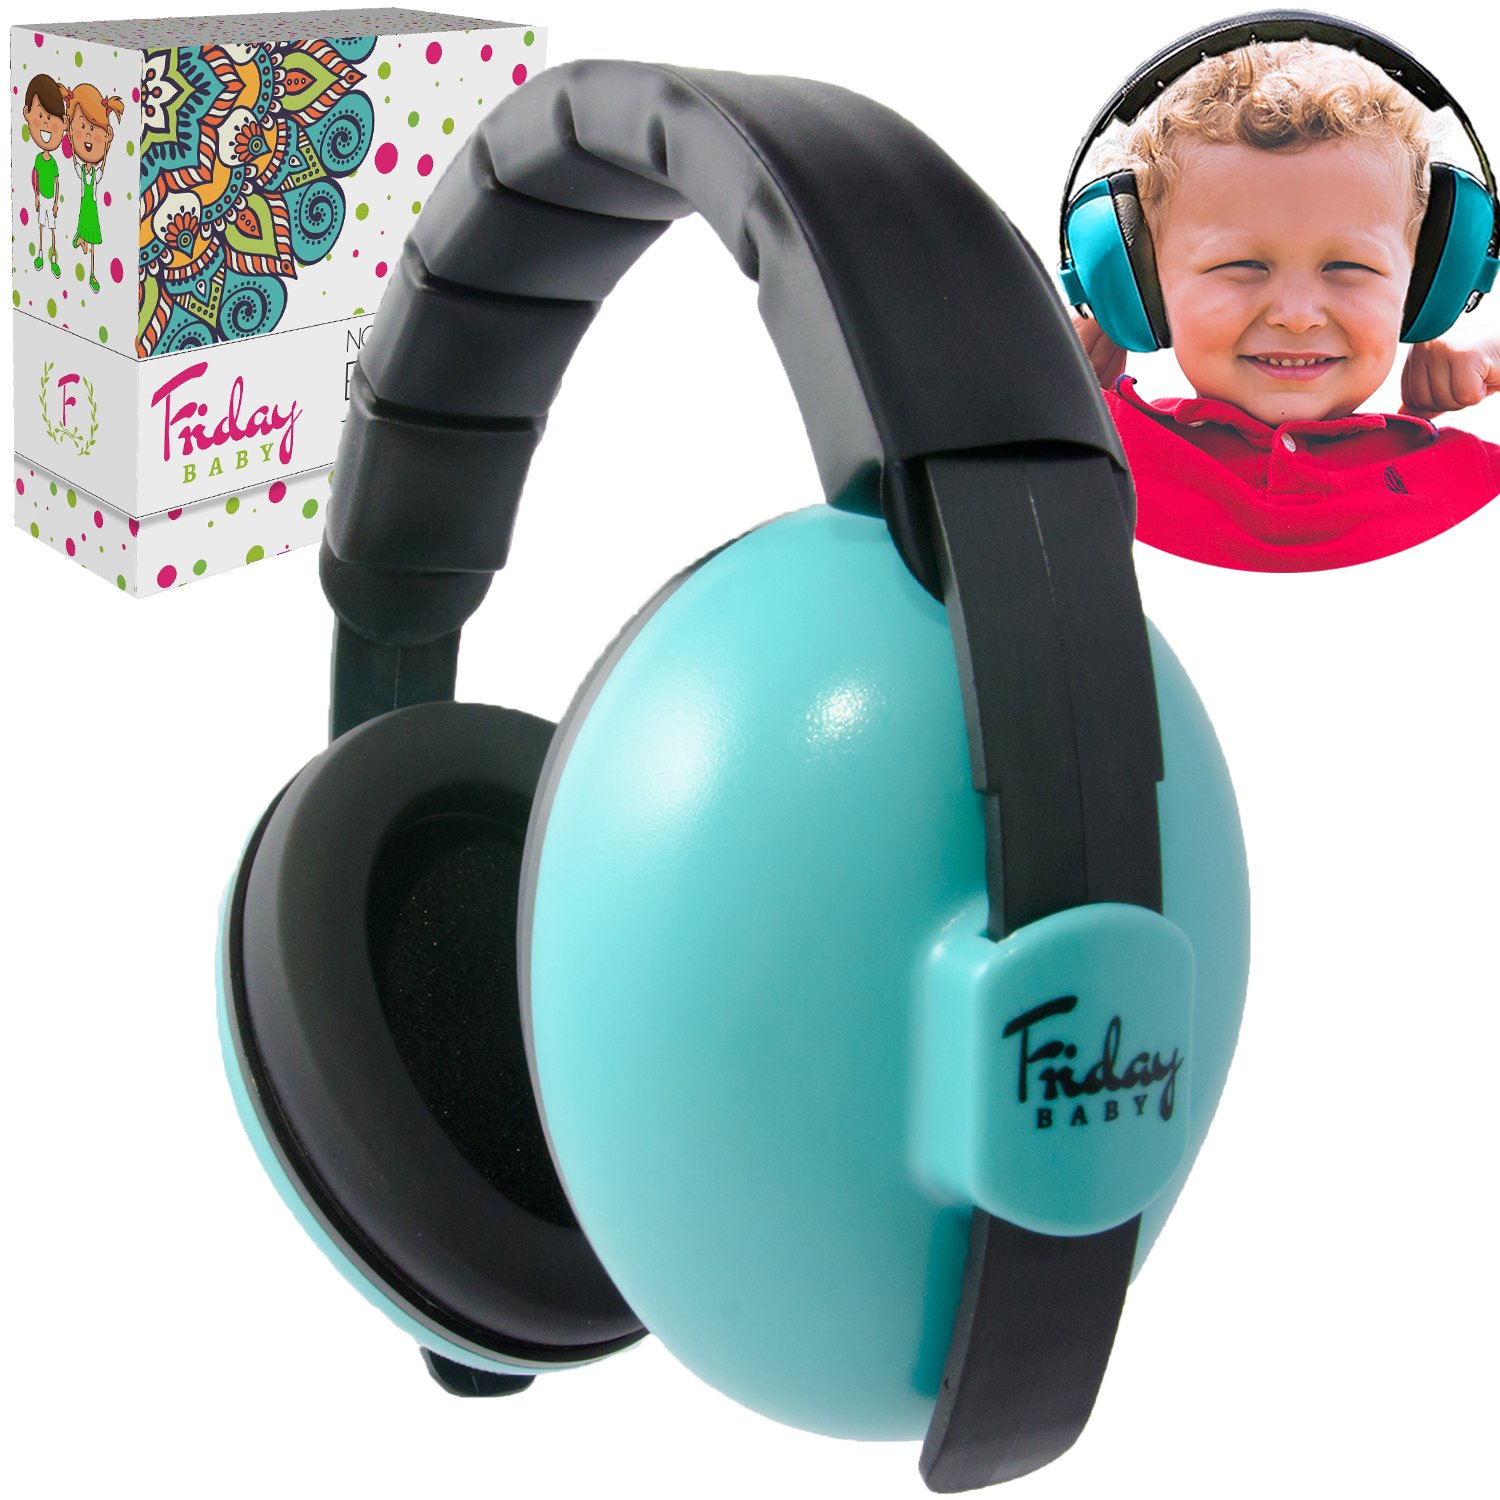 Newborn Baby Ear Protection FridayBaby | Comfortable Adjustable Noise Cancelling Headphones Babies, Toddlers, Boys, Girls | Baby Headphones Noise Reduction | Concerts Fireworks (0-2 Years)